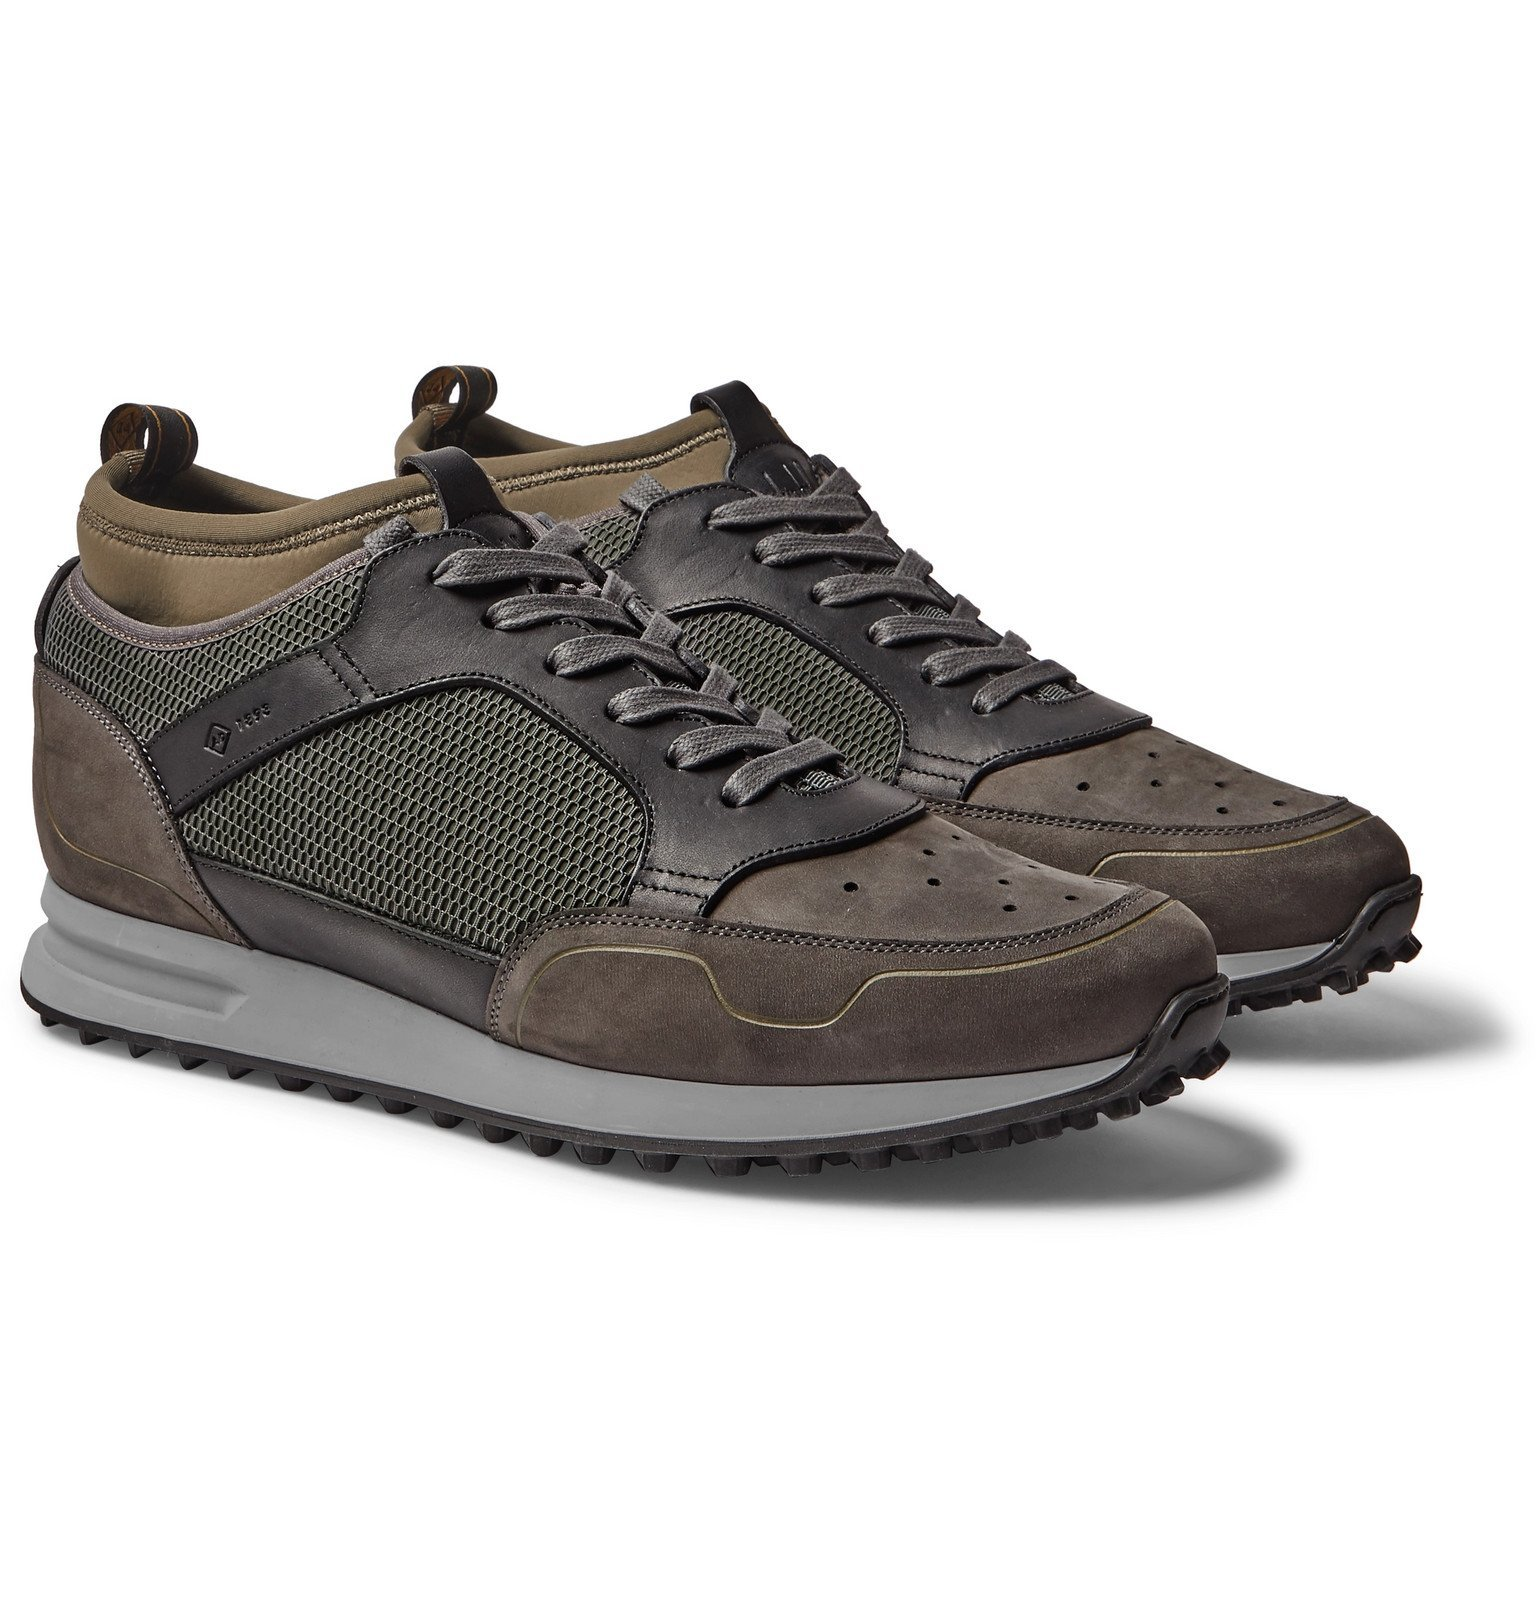 Dunhill - Radial Runner Neoprene and Leather-Trimmed Suede and Mesh Sneakers - Green